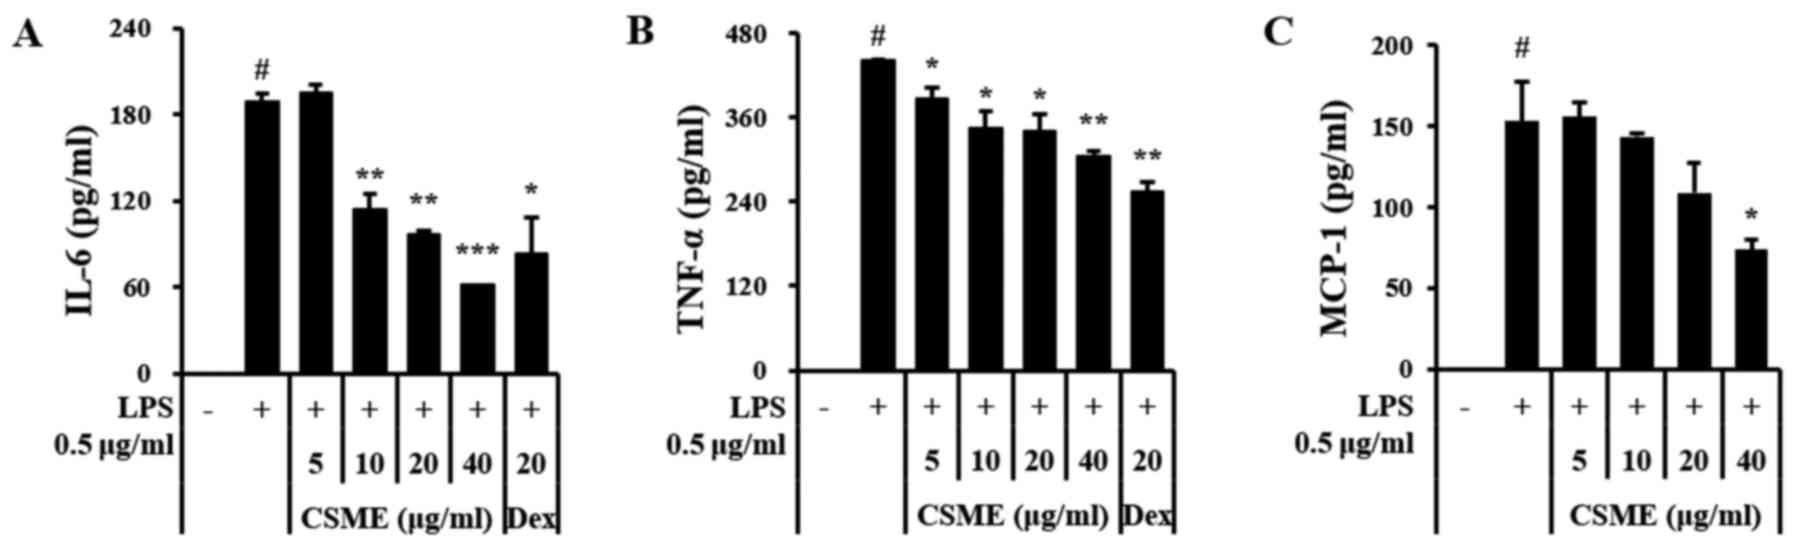 Anti-inflammatory effects of a methanolic extract of